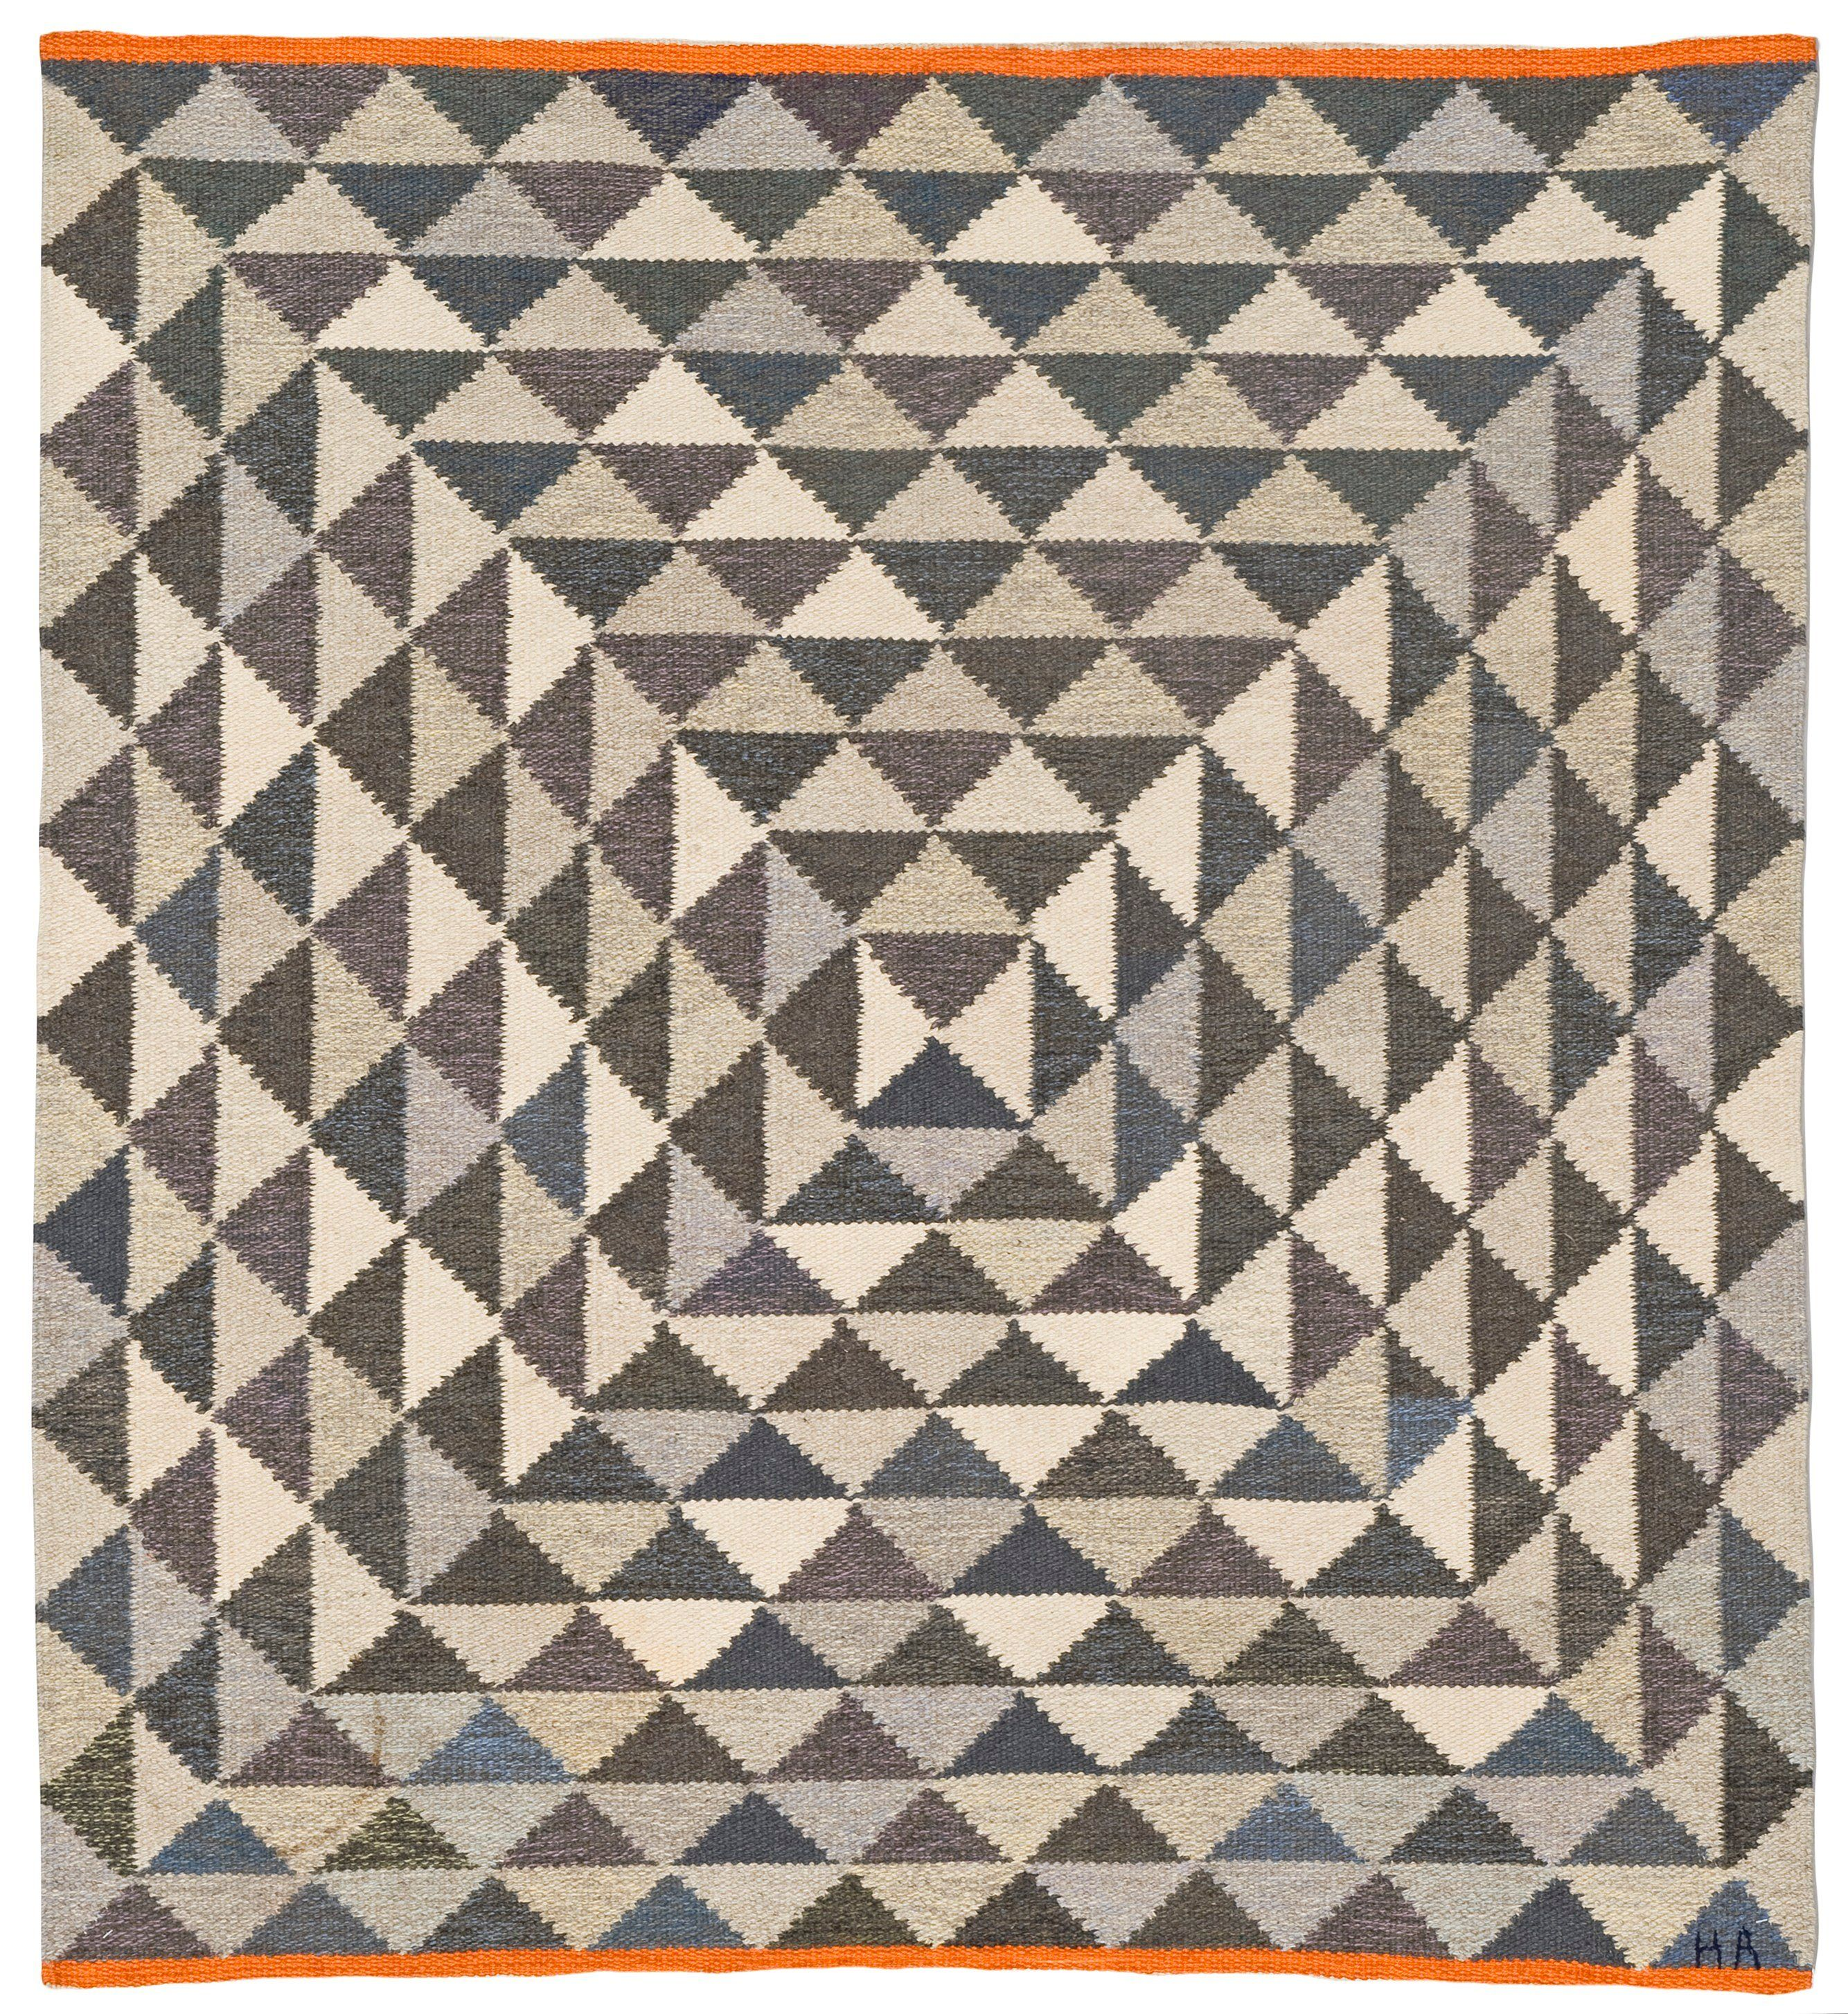 rug designs and patterns. Pattern Designs · Anonymous; Wool Flat Weave Rug, 1950s/60s. Rug And Patterns